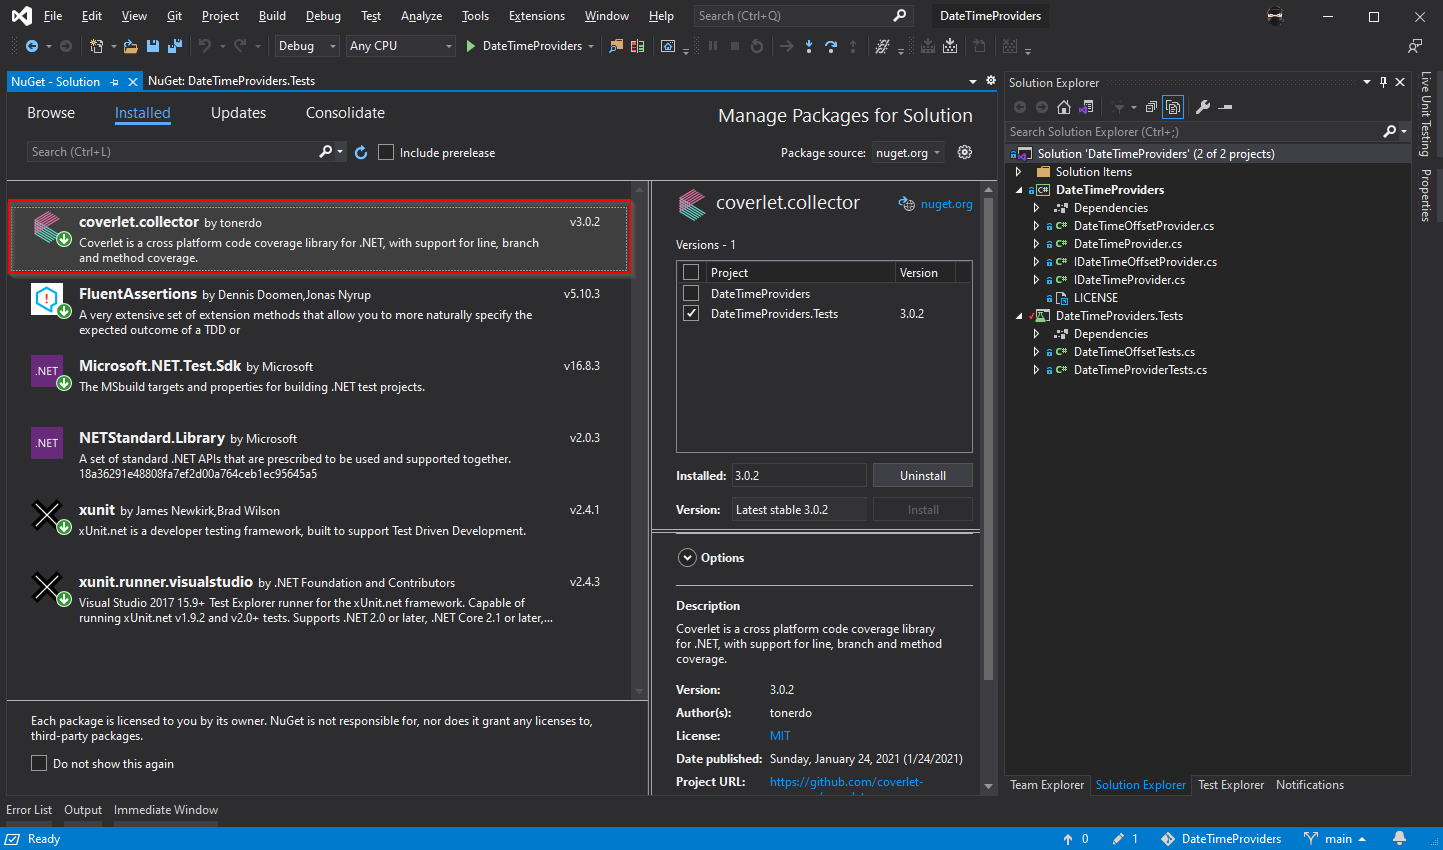 Visual Studio with the Coverlet.Collector nuget package added to unit test projects